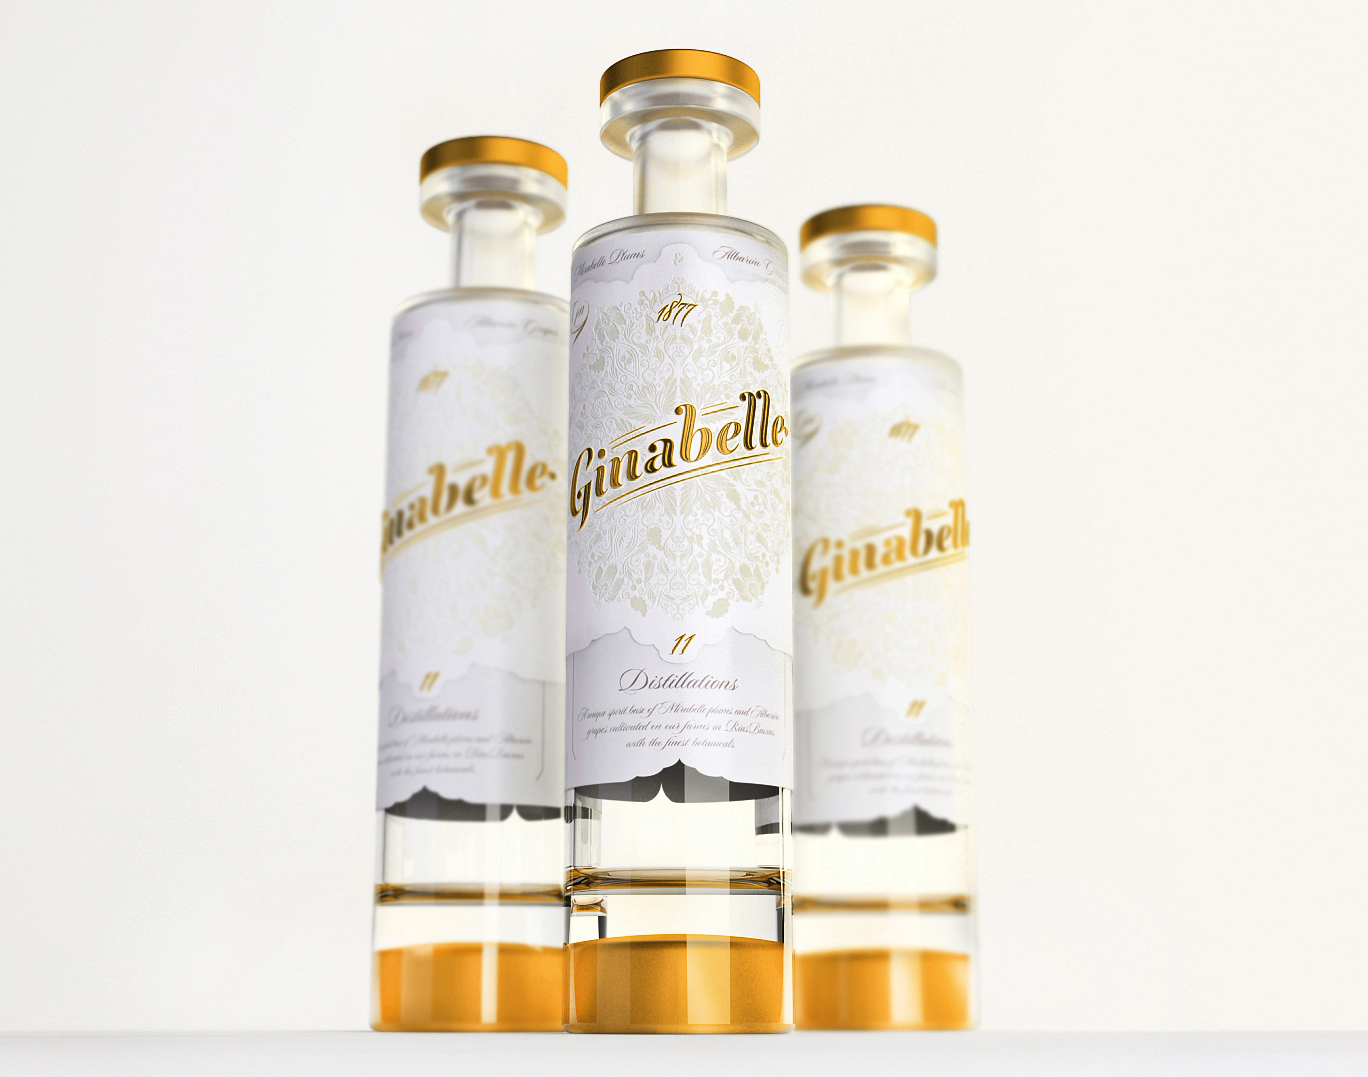 Have you seen the new Ginabelle?